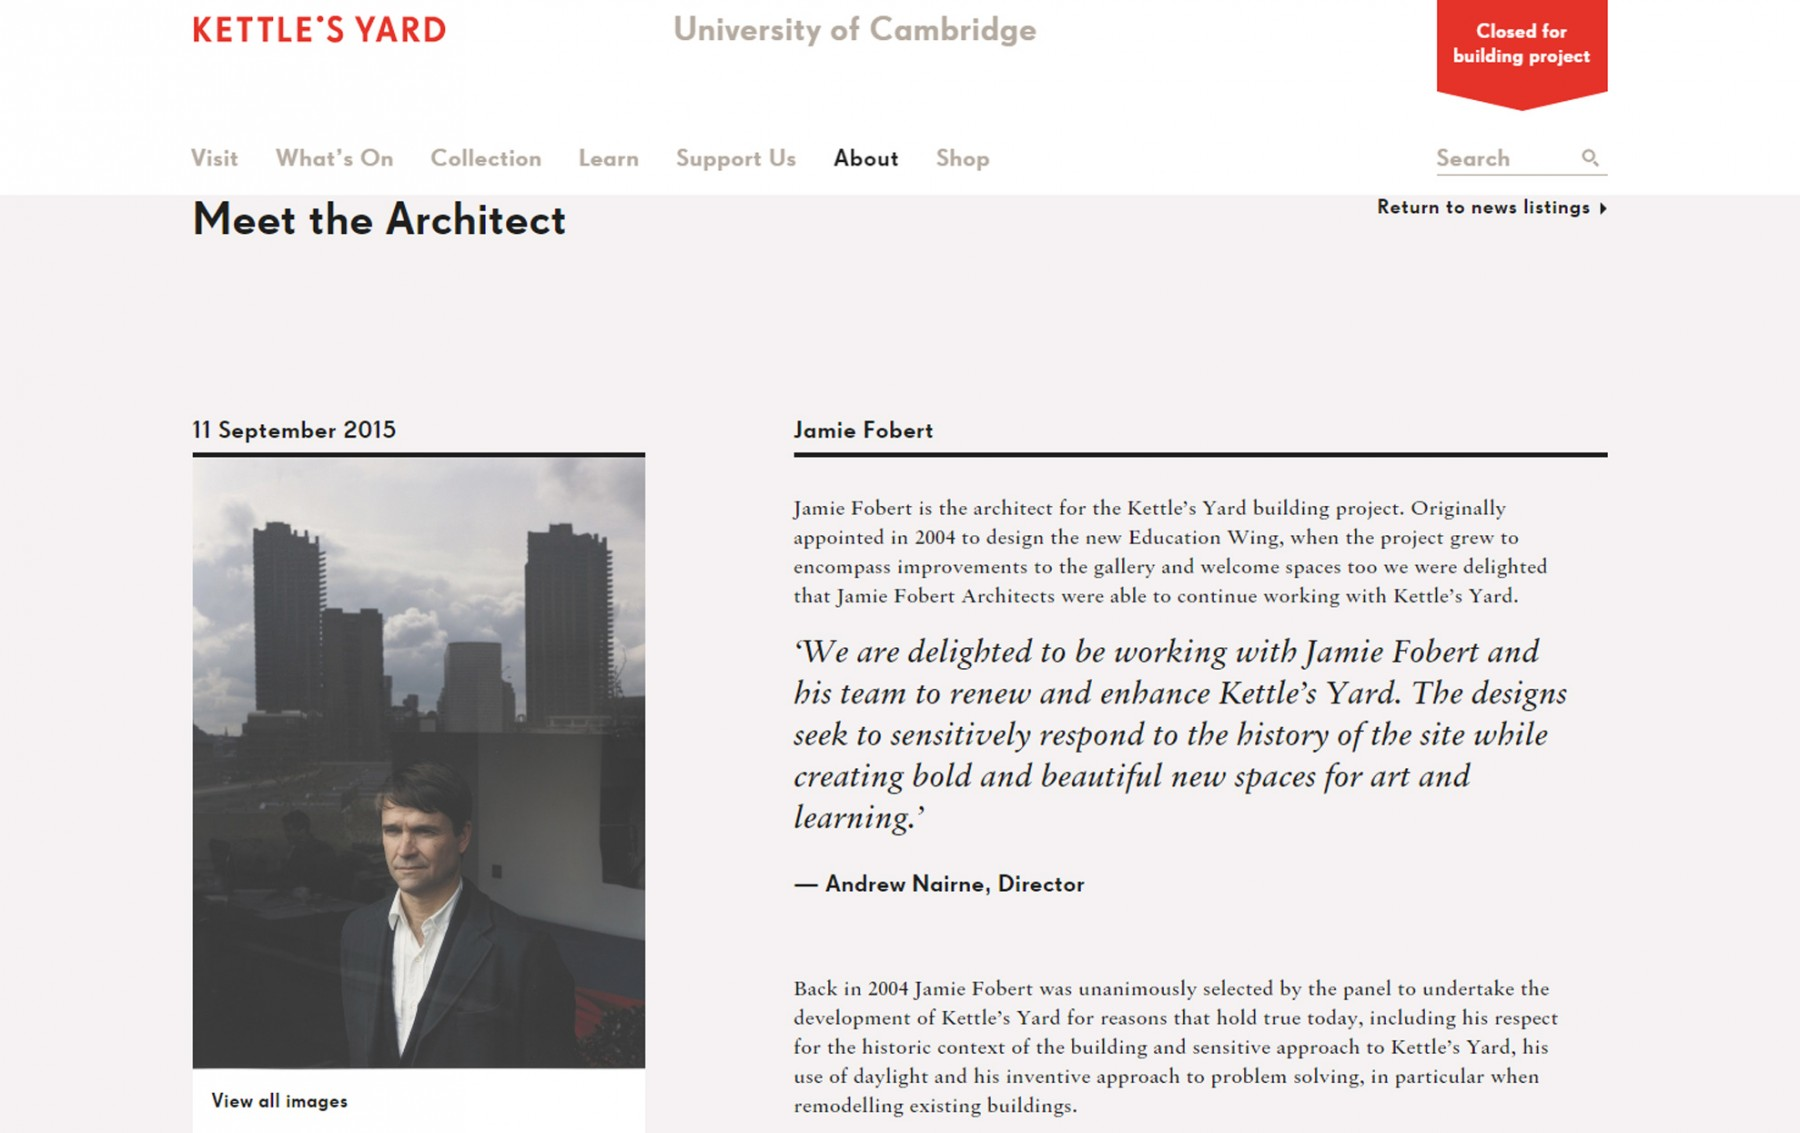 Jamie-Fobert-Architects- Kettles-Yard-Gallery-Cambridge- Meet-the-Architect- gallery-museum-extension